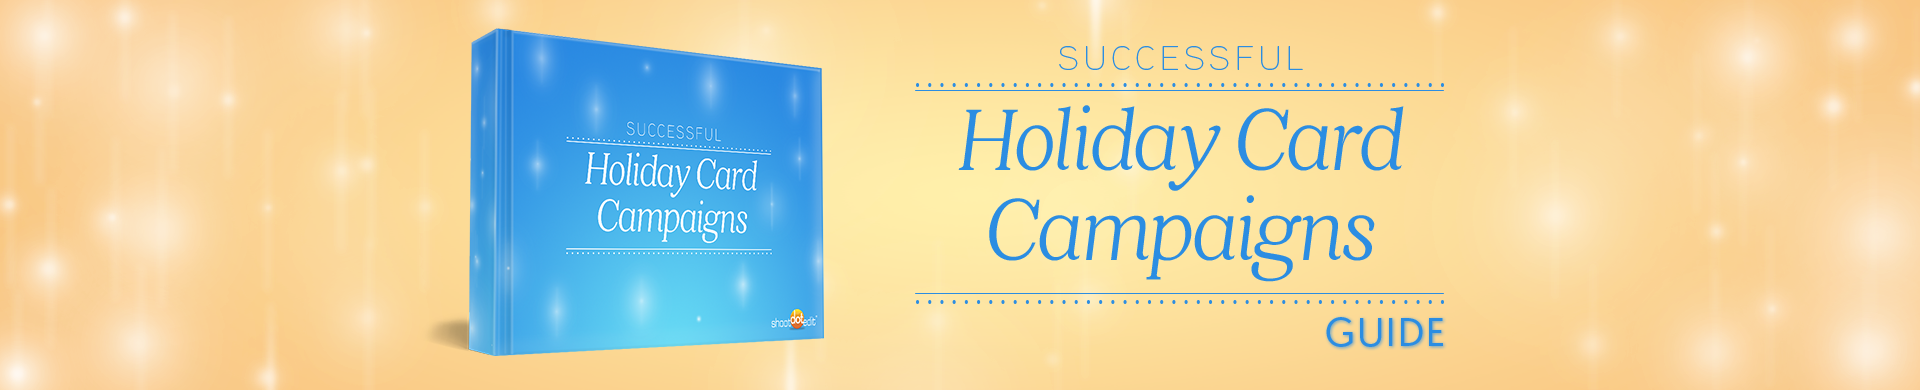 HolidayCardCampaign2015Guide_Header